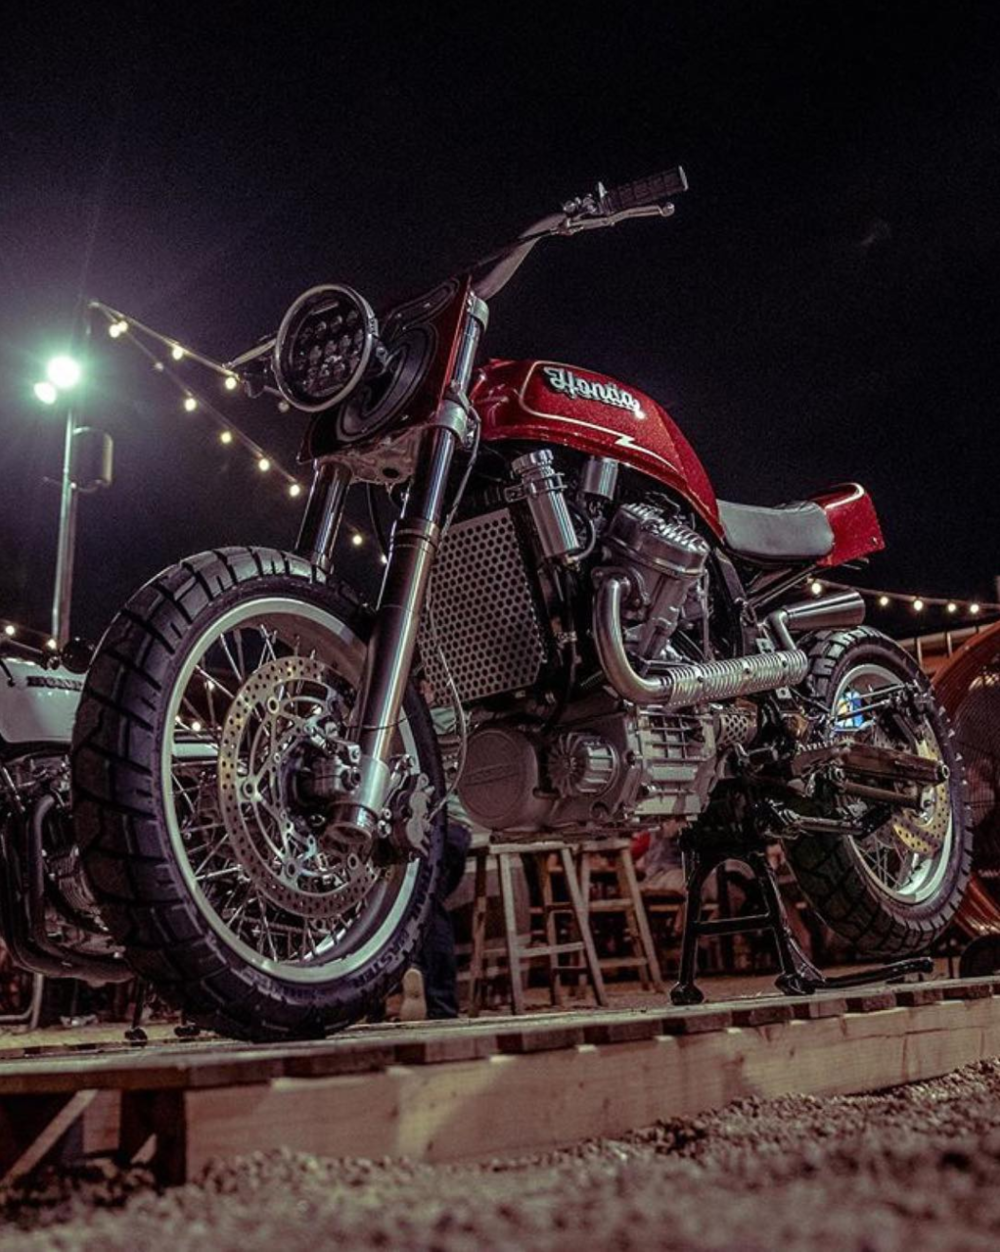 @dentonmoto shared this image of @olcmoto's #supermotoscramblerstein at East Side shot by @ olcmoto .